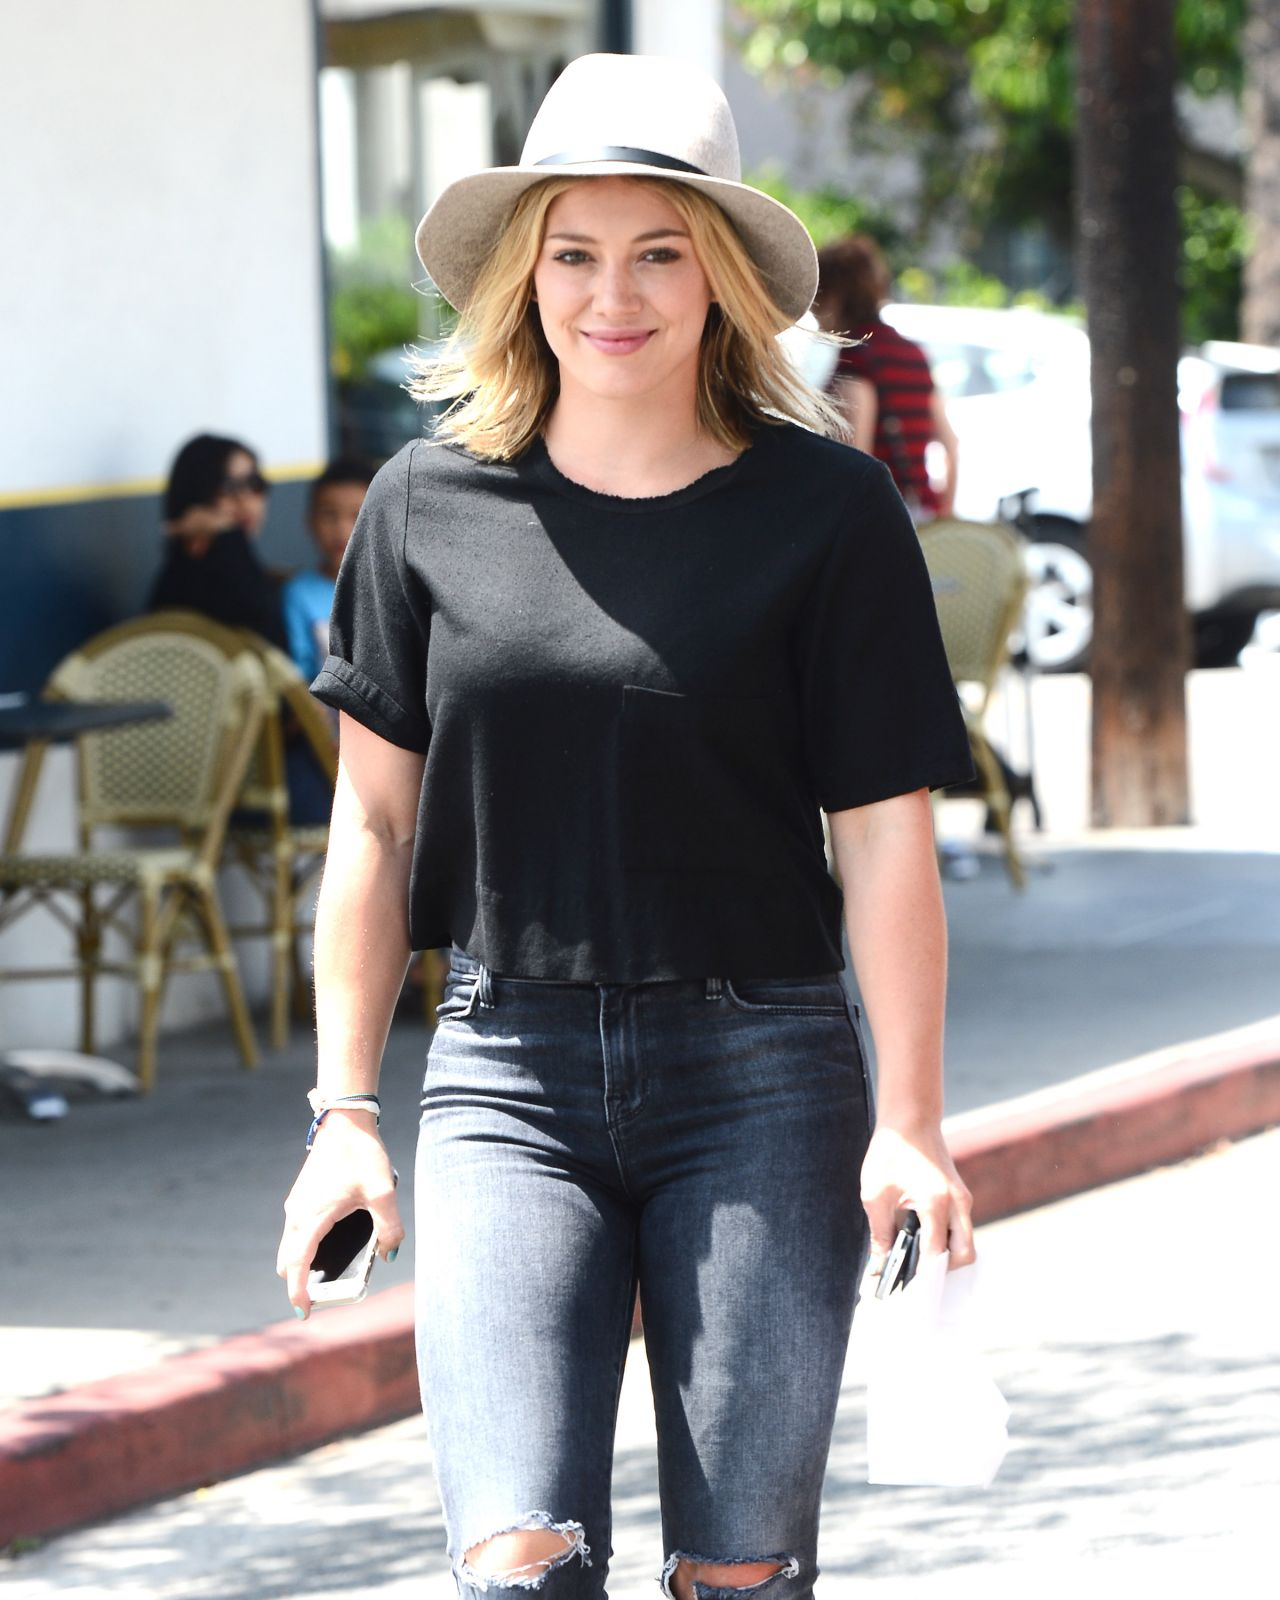 Hilary Duff Getting Lunch at La Conversation Cafe in Los Angeles – Aug. 2014